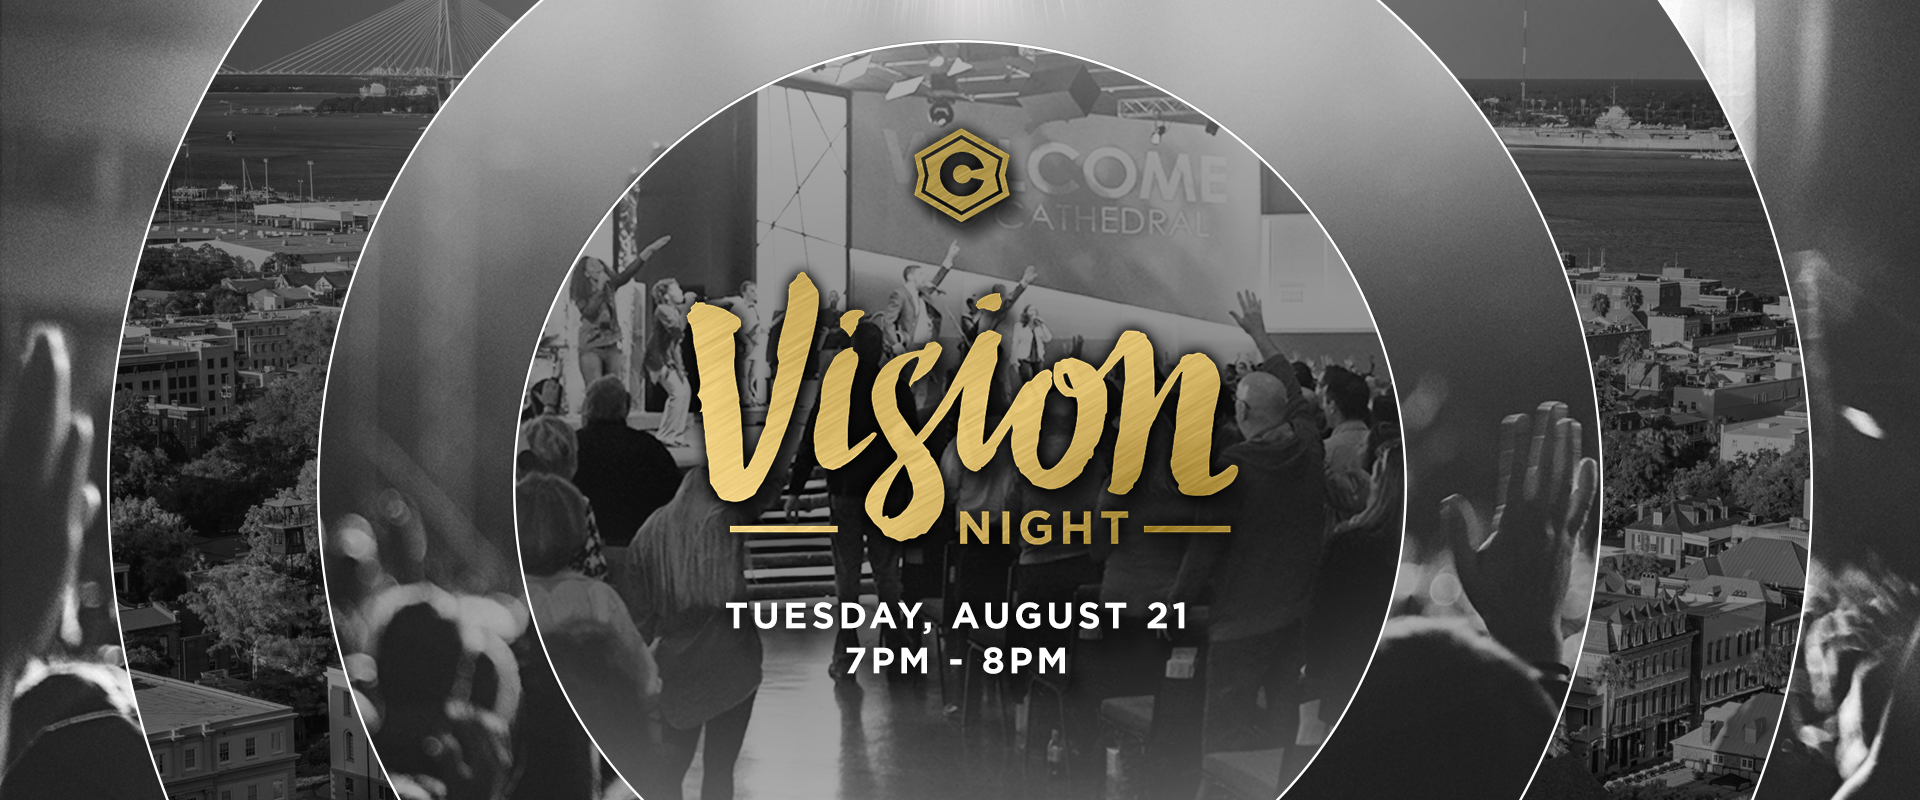 Vision Night Slide - August 21